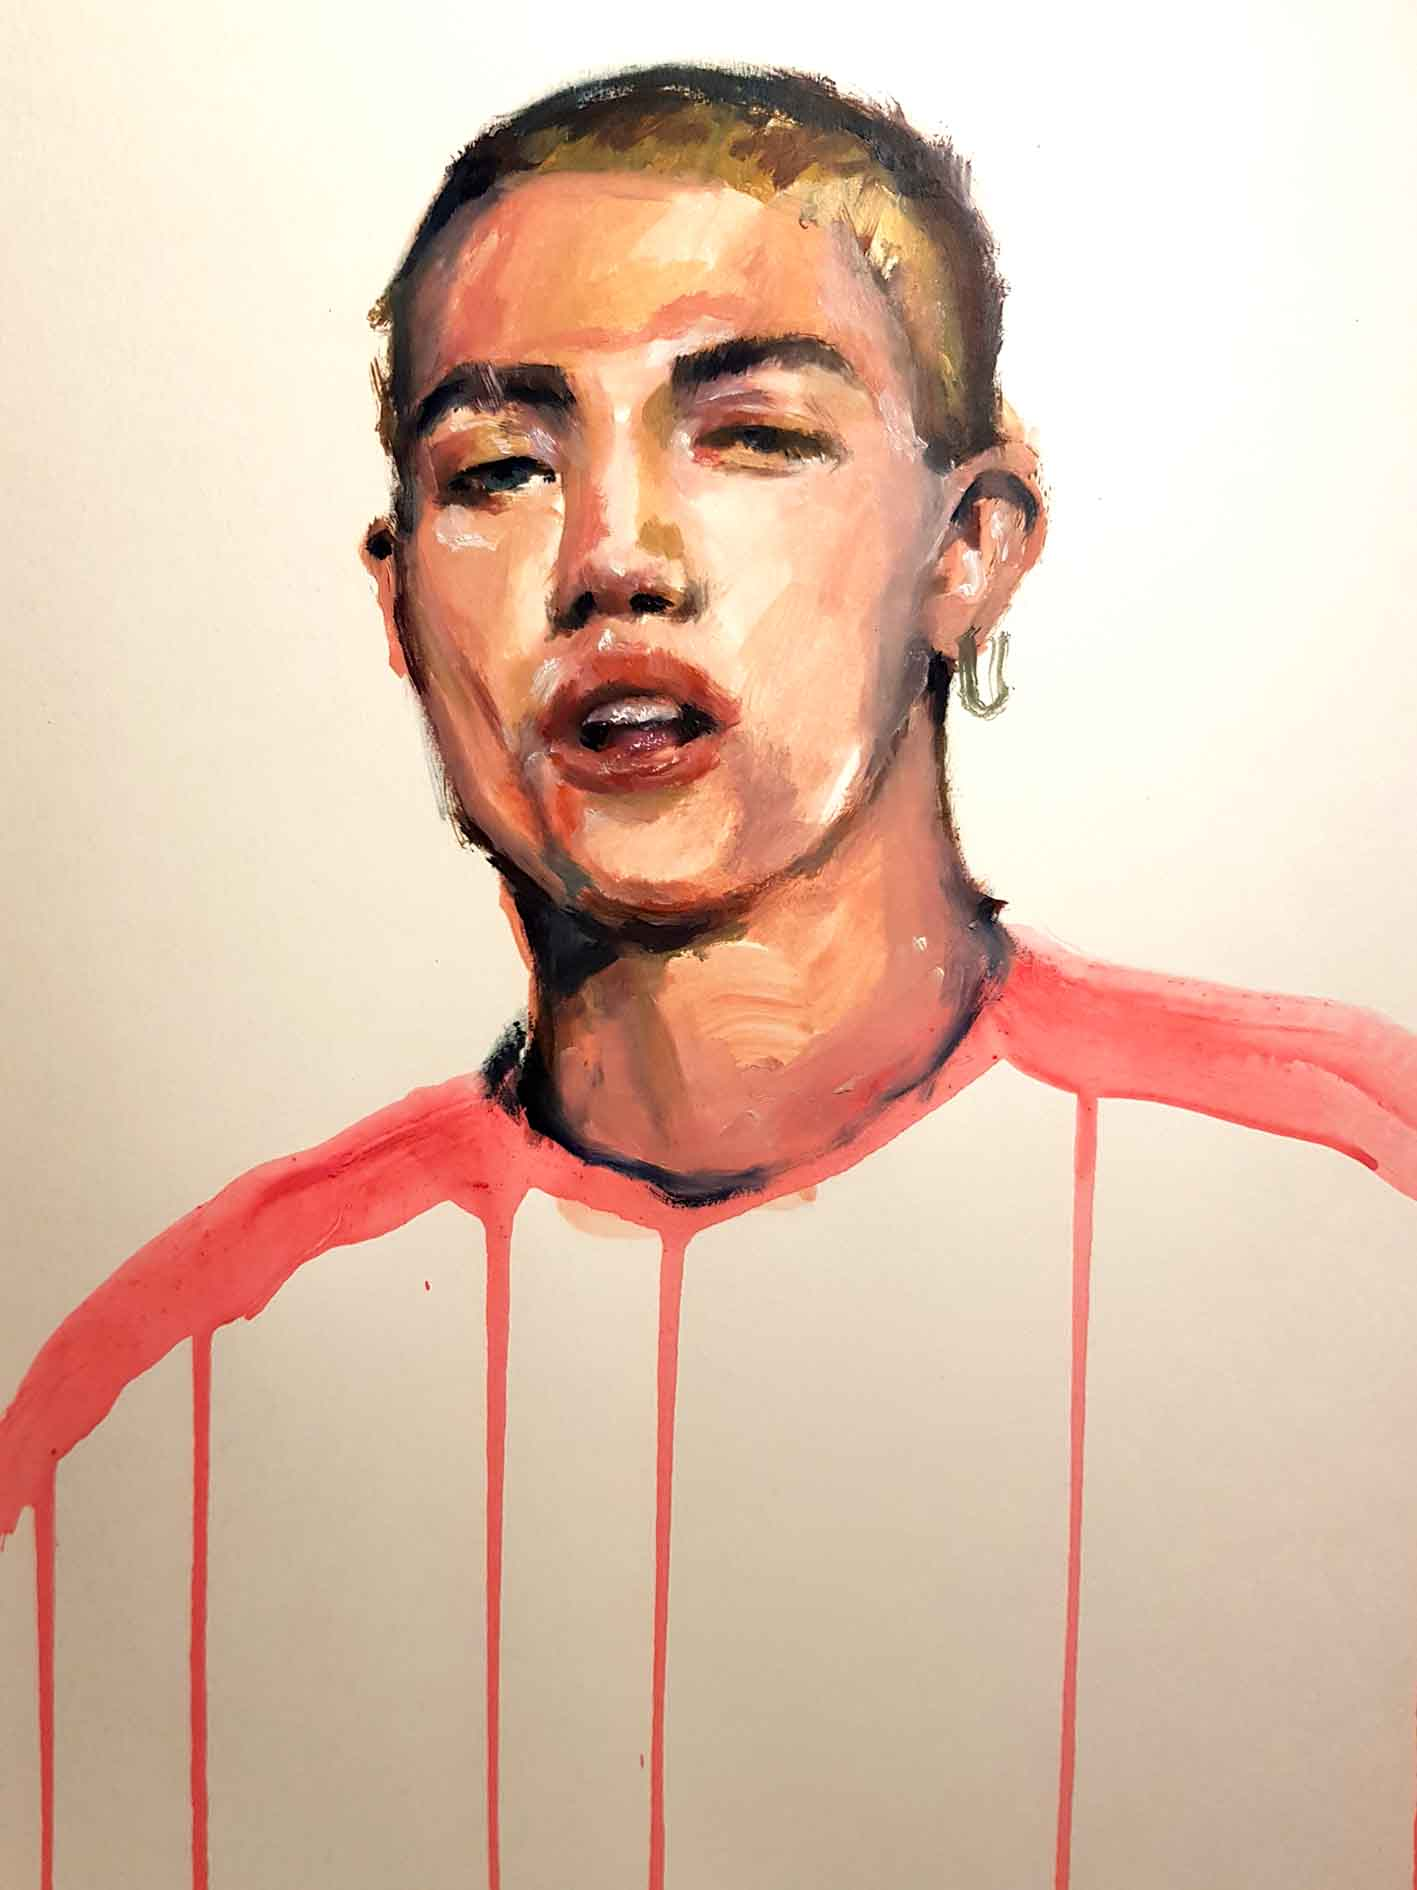 Unisex Portrait, oil painting over paper, A3, 2019